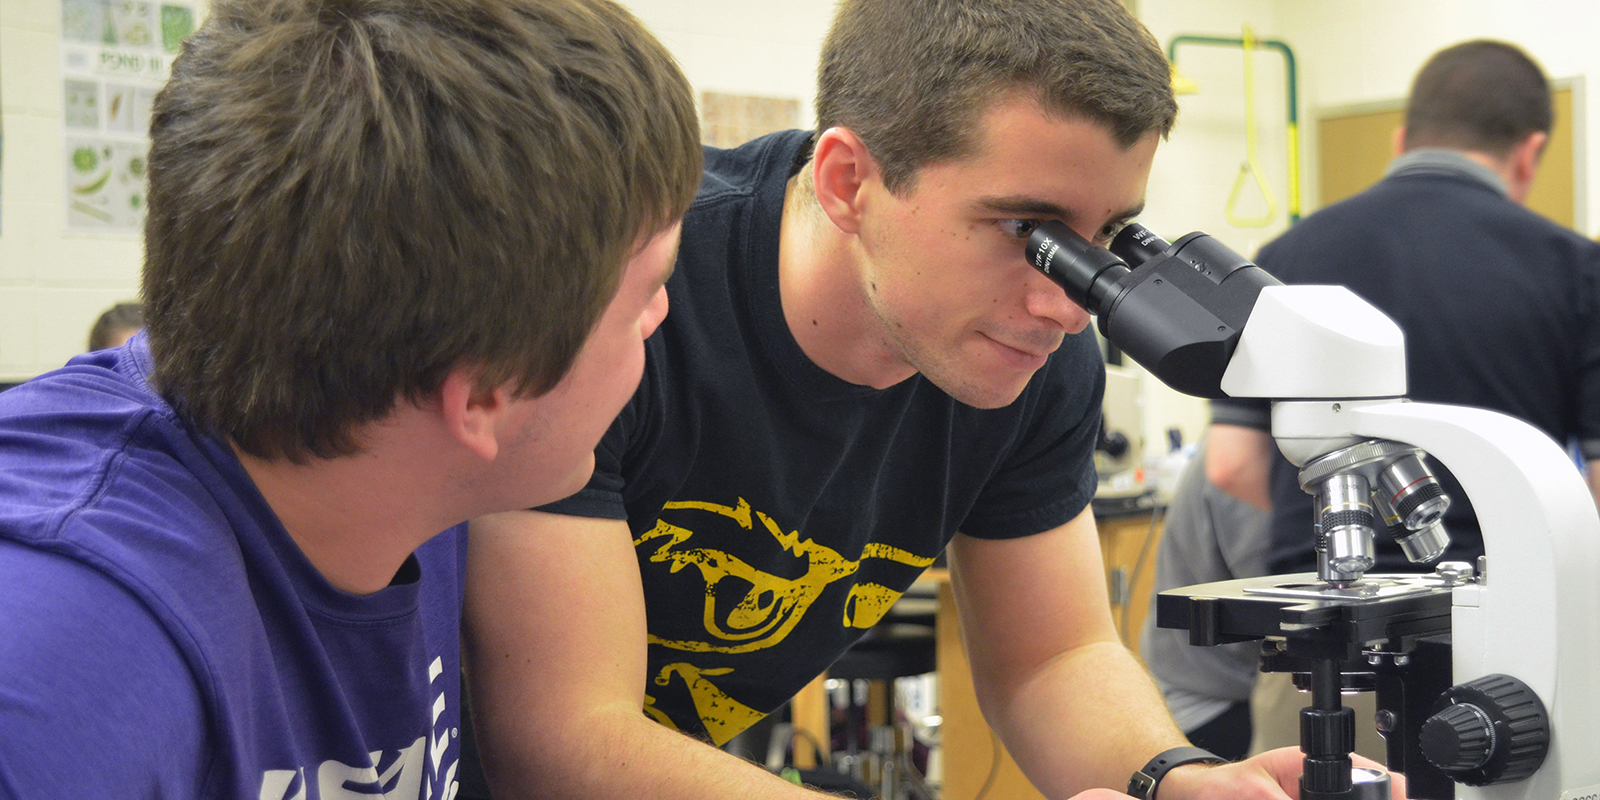 Two students looking at a microscope.